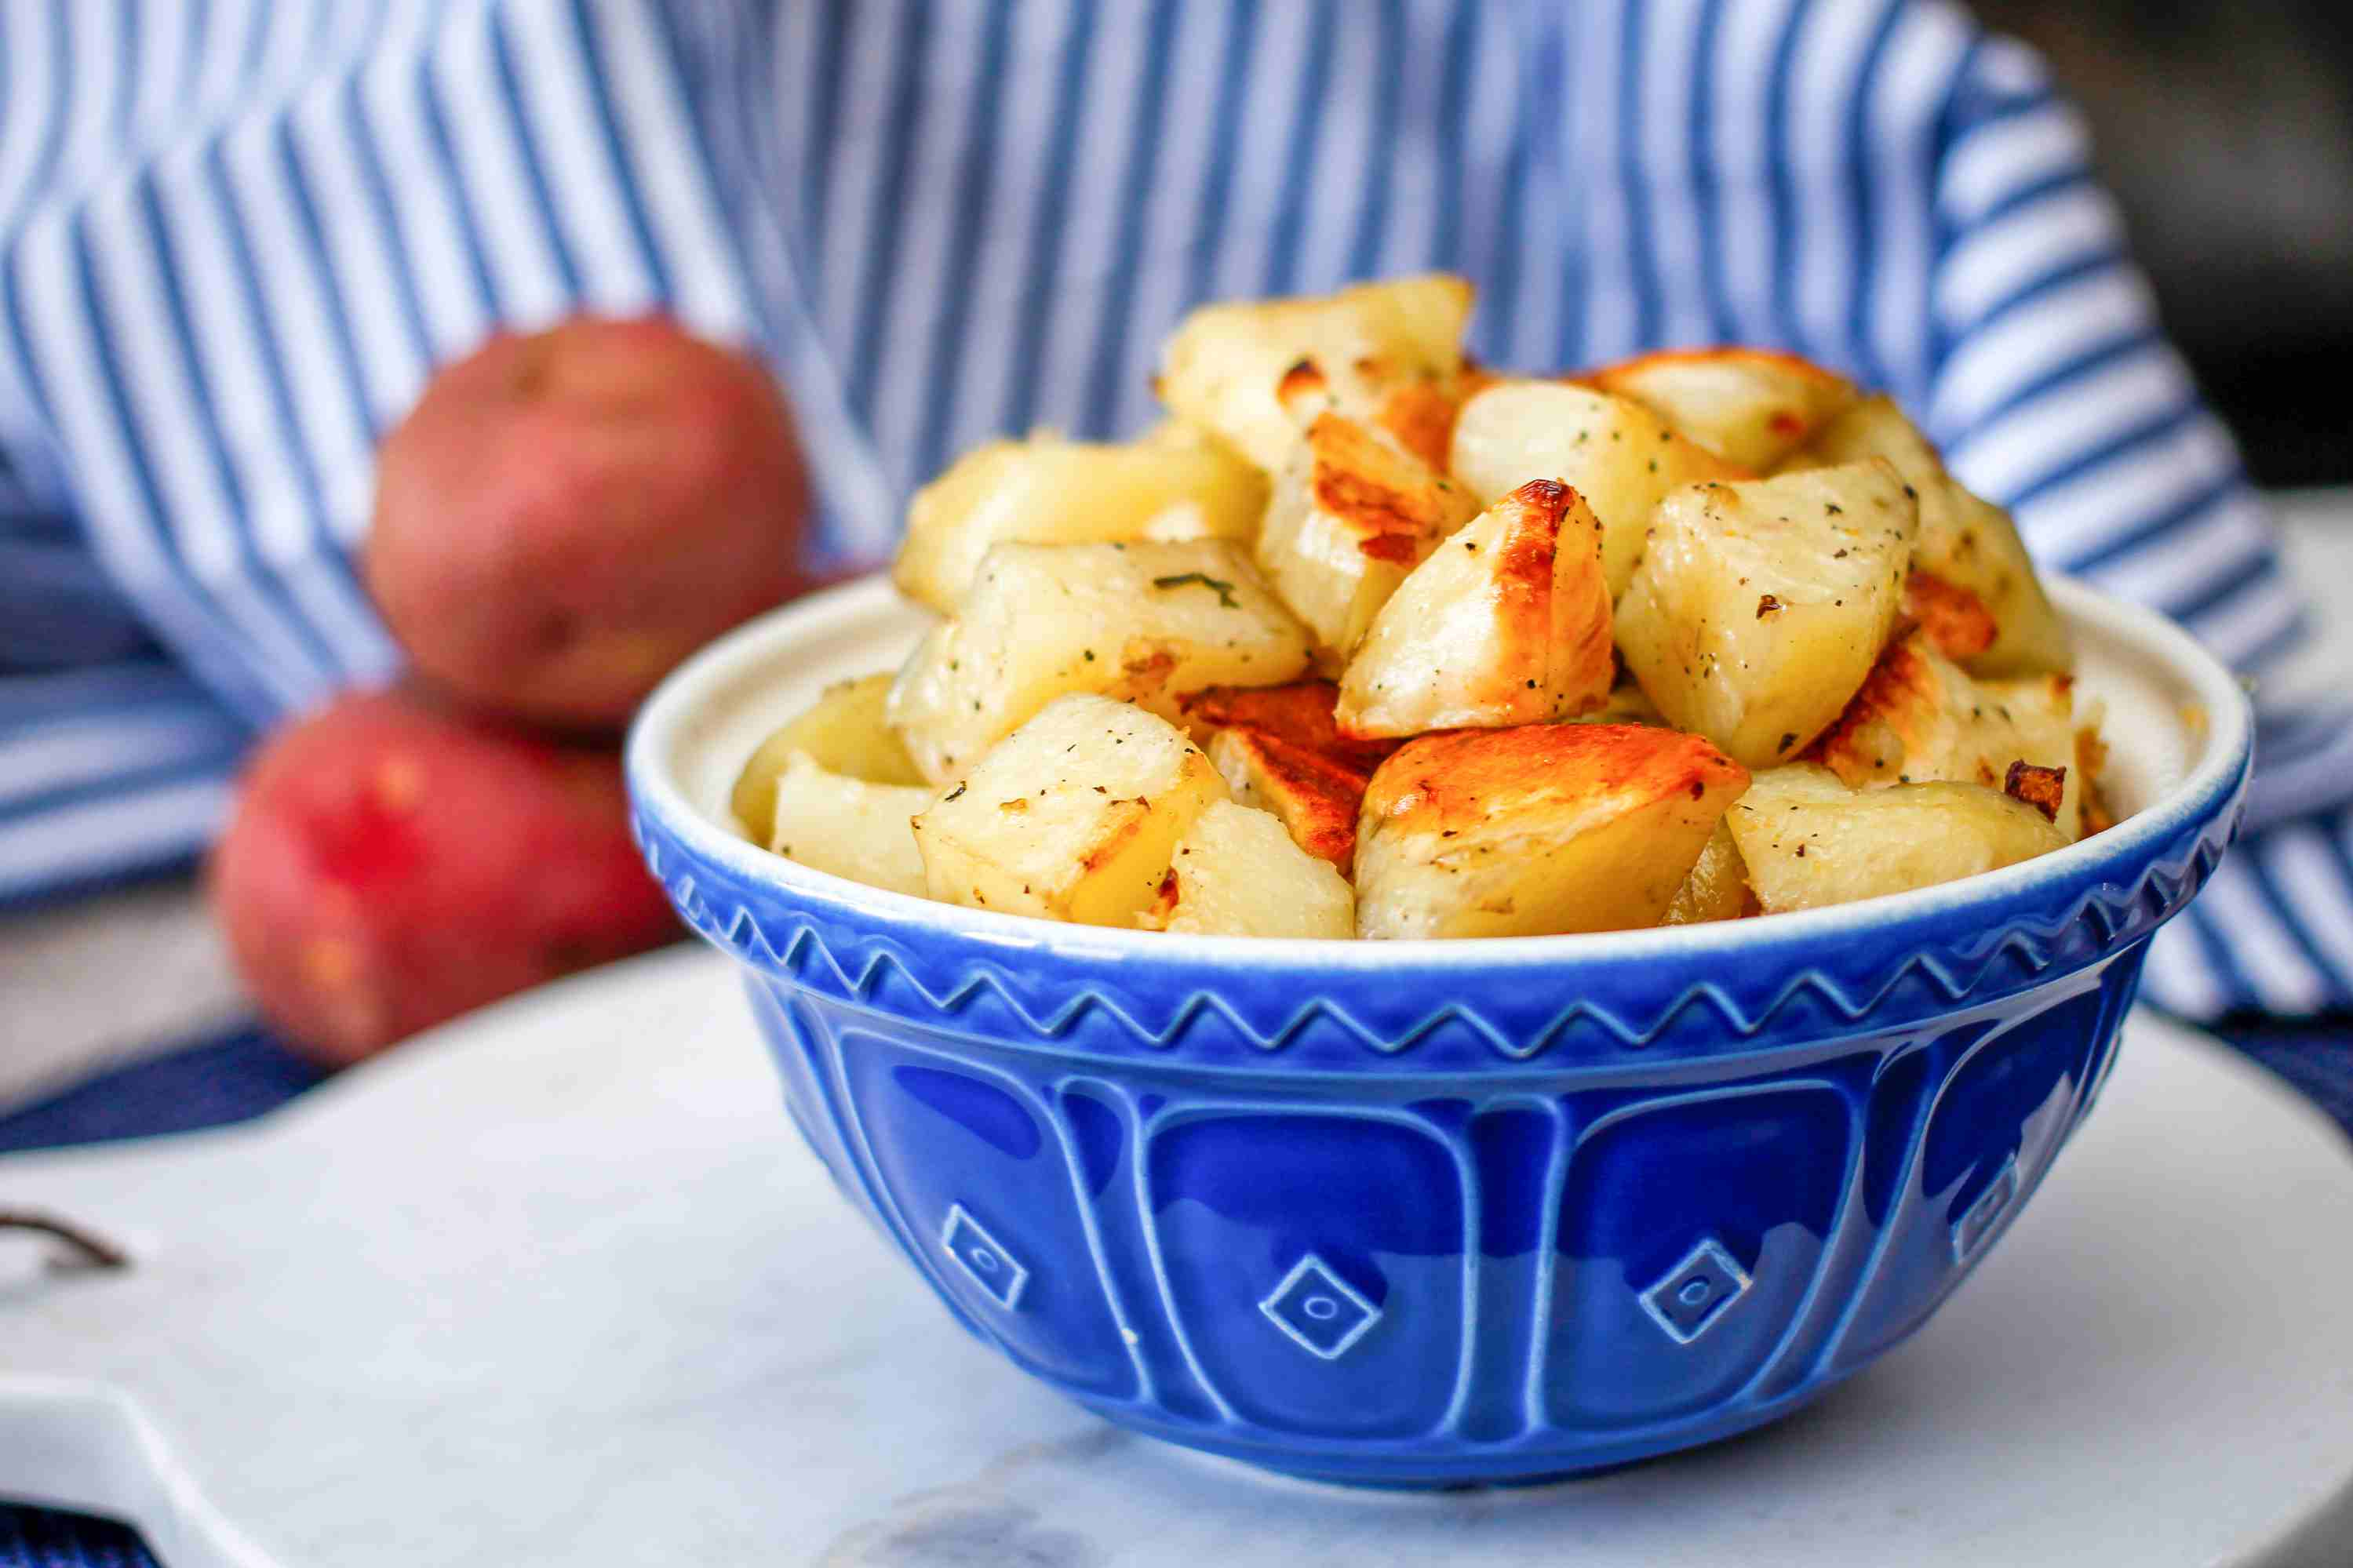 Roasted potatoes with garlic and onions in bowl